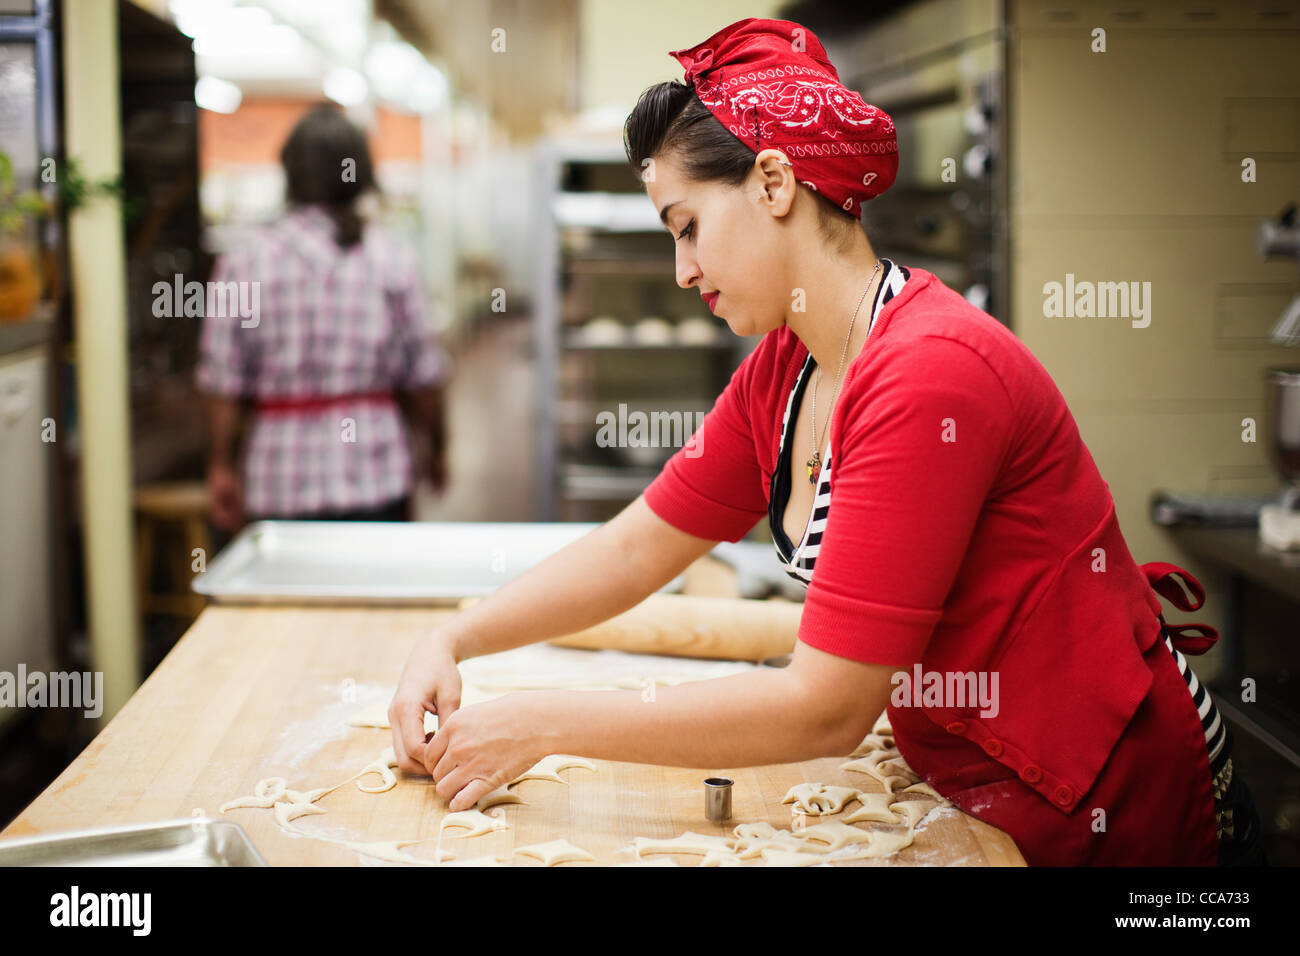 Young baker preparing food in kitchen - Stock Image